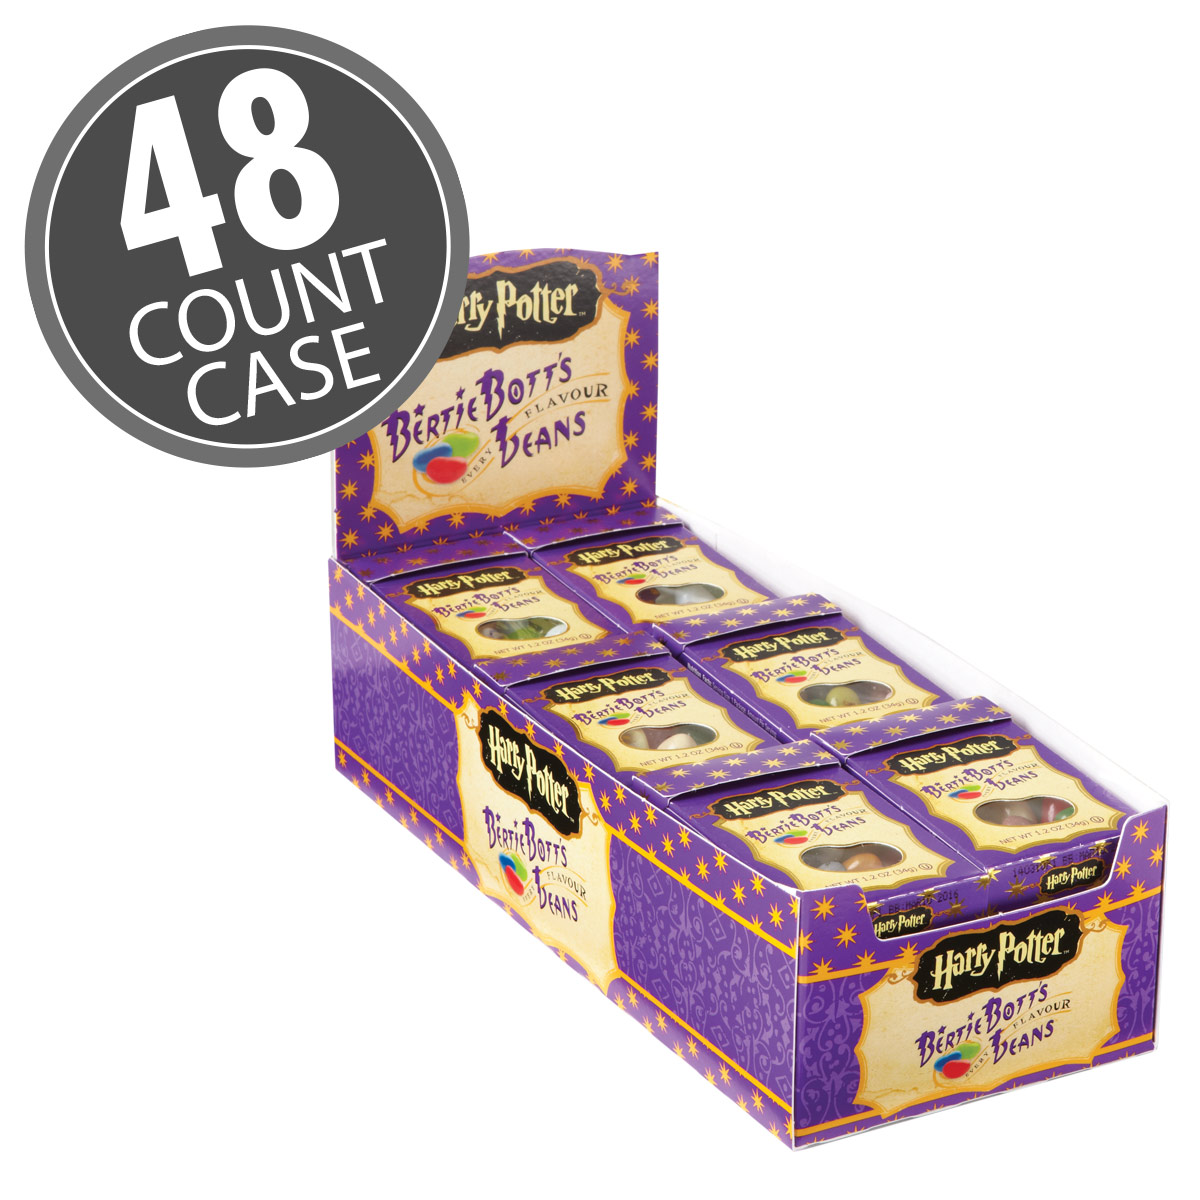 Harry Potter™ Bertie Botts Every Flavour Beans - 1.2 oz Box - 48-Count Case